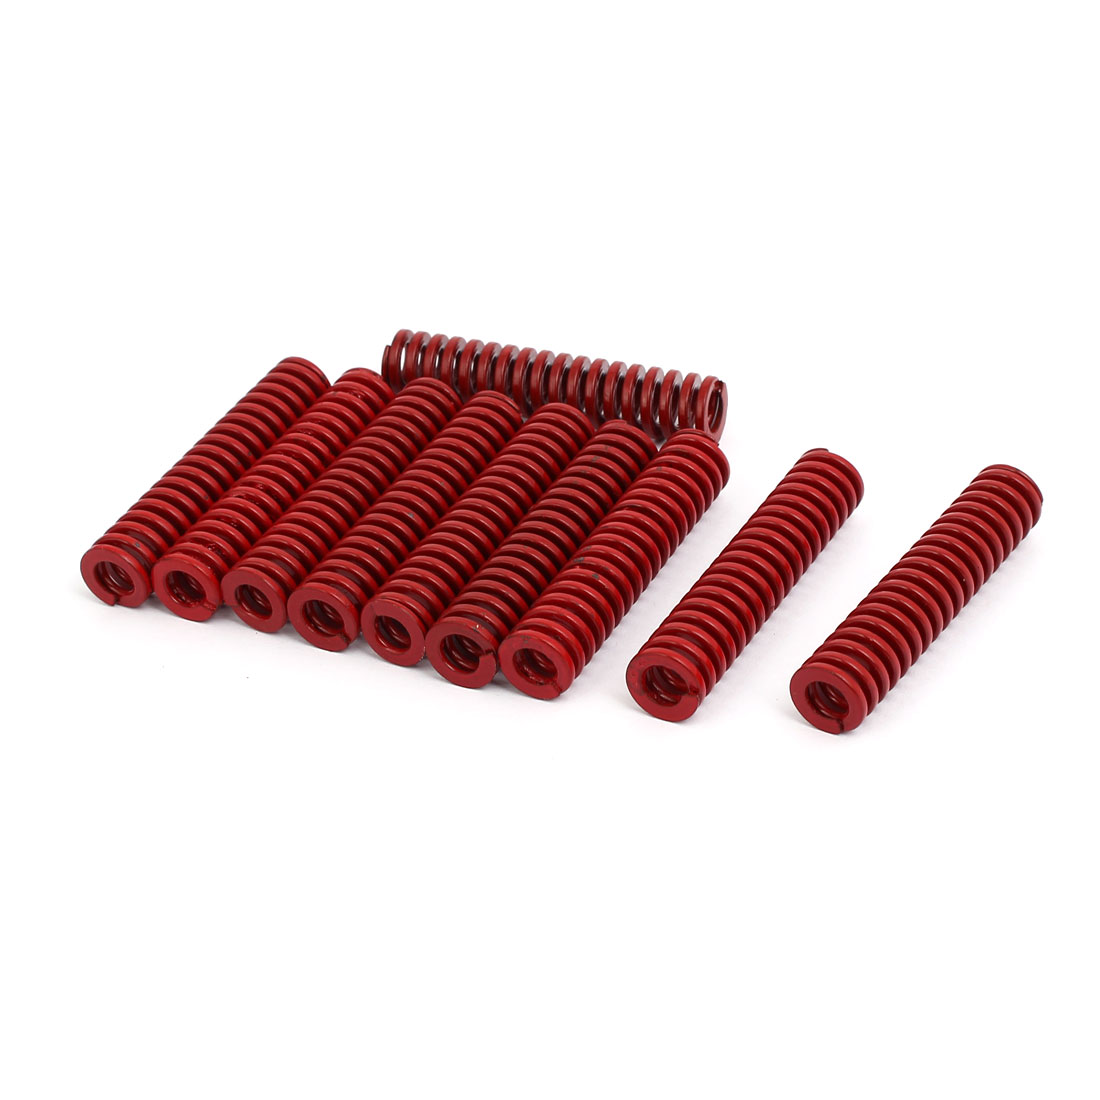 12mm Outer Dia 55mm Length Medium Load Compression Mould Die Spring Red 10pcs